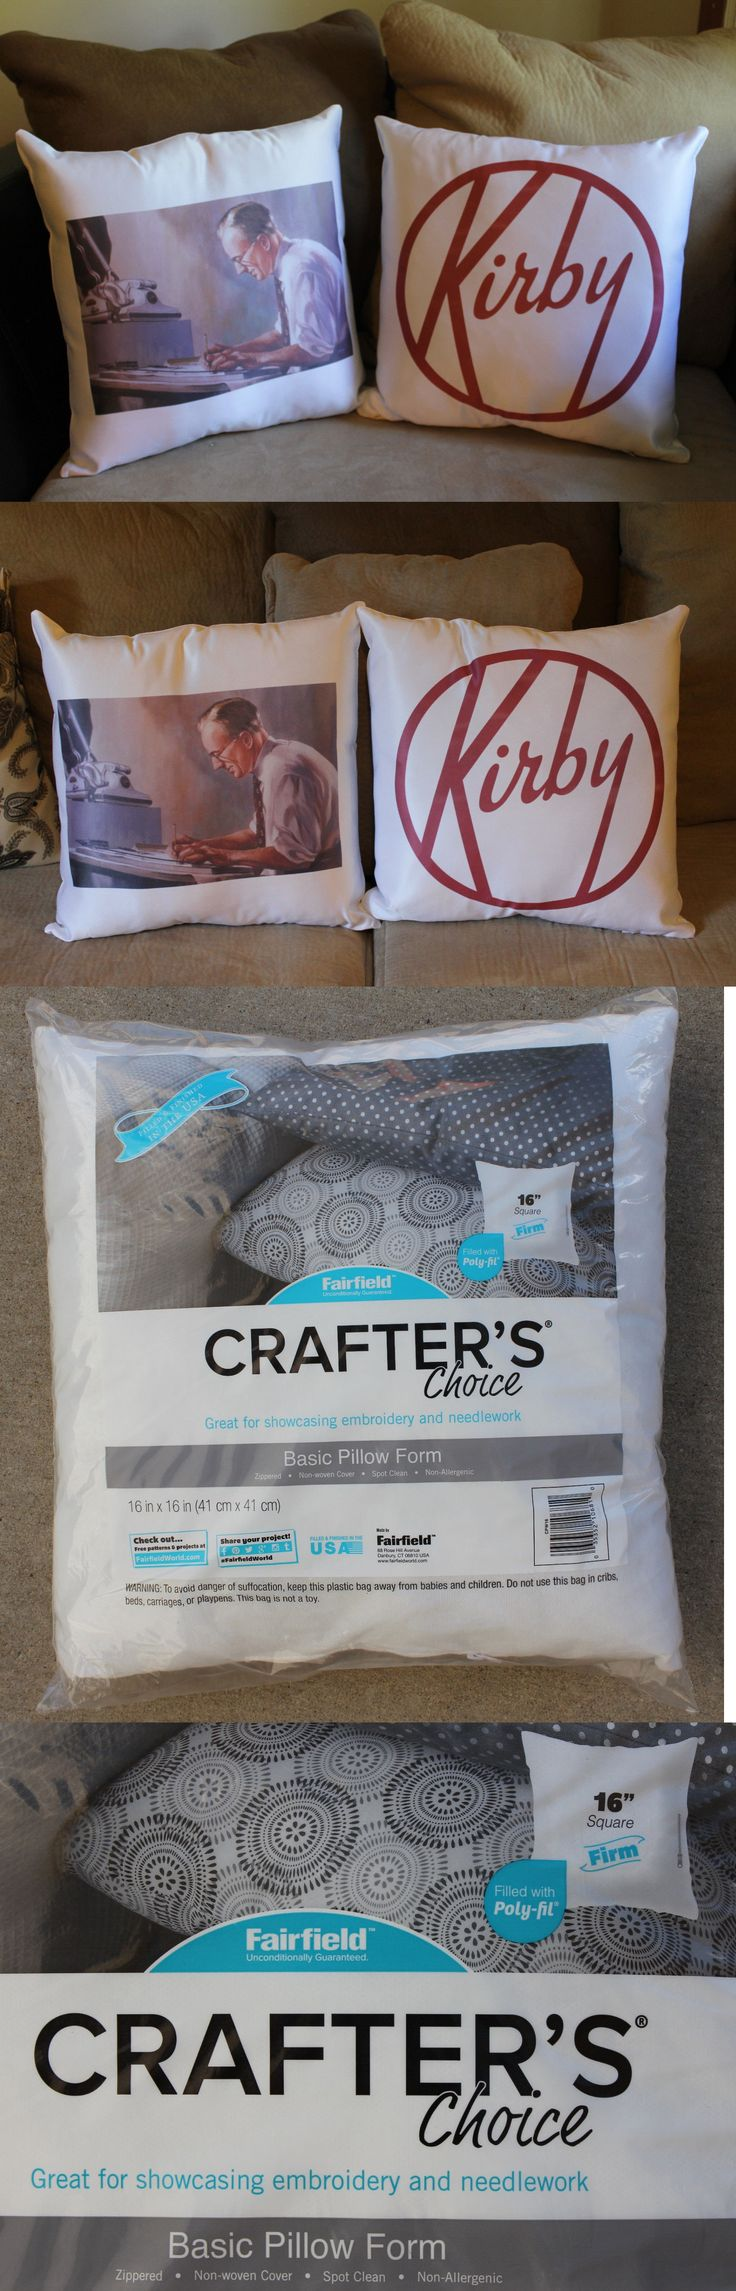 Vintage Vacuums 115993: Vintage Upright Vacuum Cleaner Floor Sweeper Kirby Throw Pillow Cases -> BUY IT NOW ONLY: $30 on eBay!